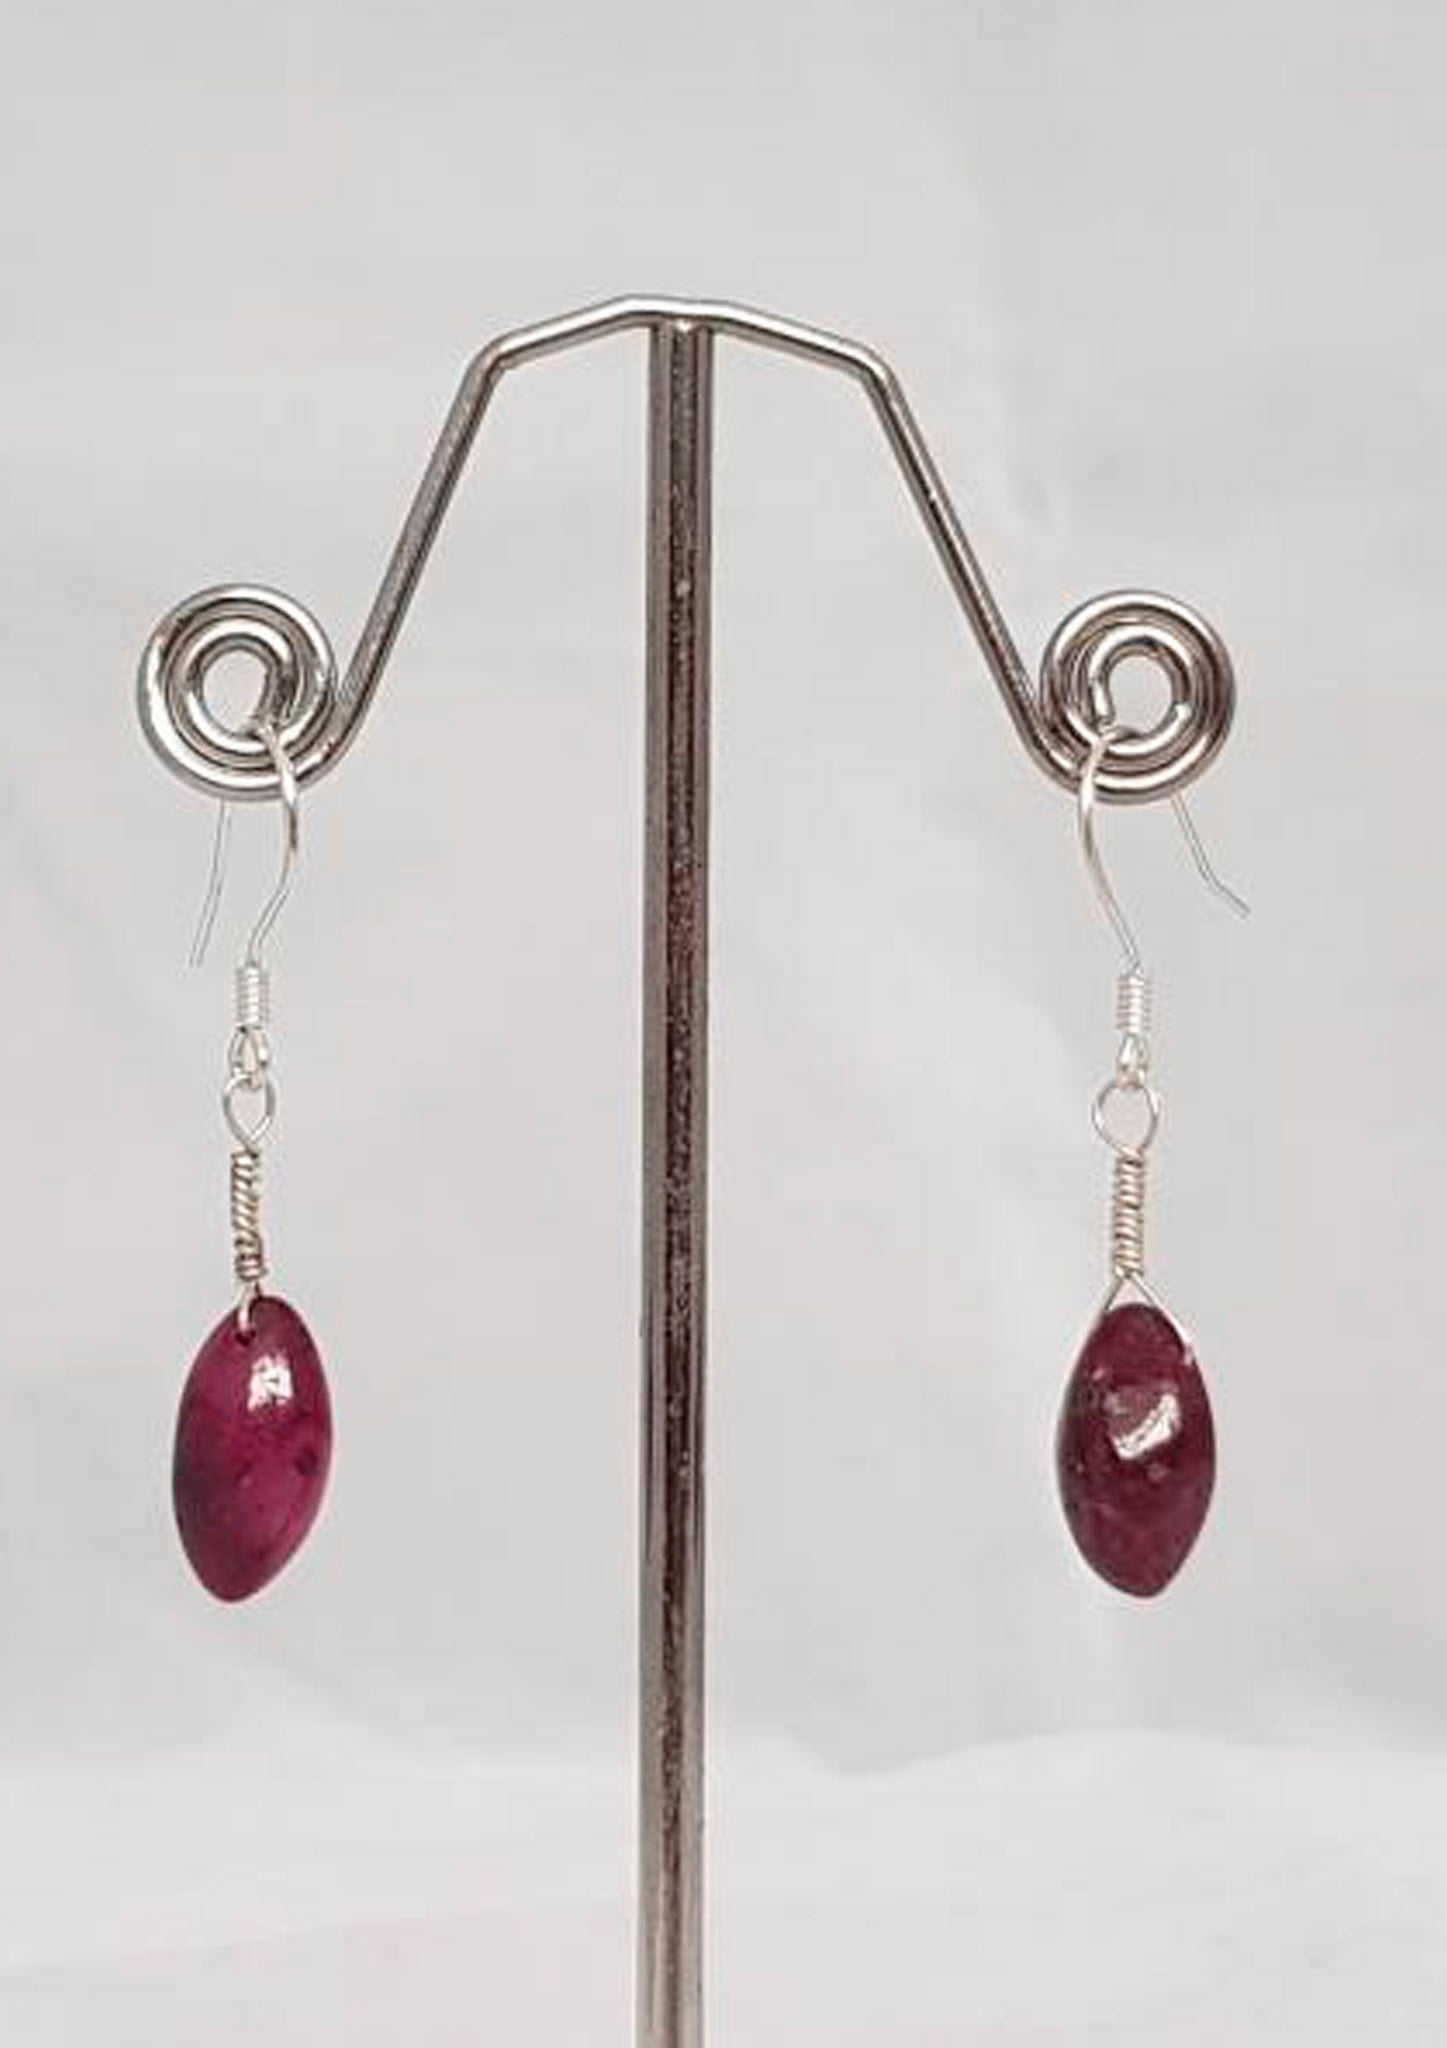 Rubies galore Earrings